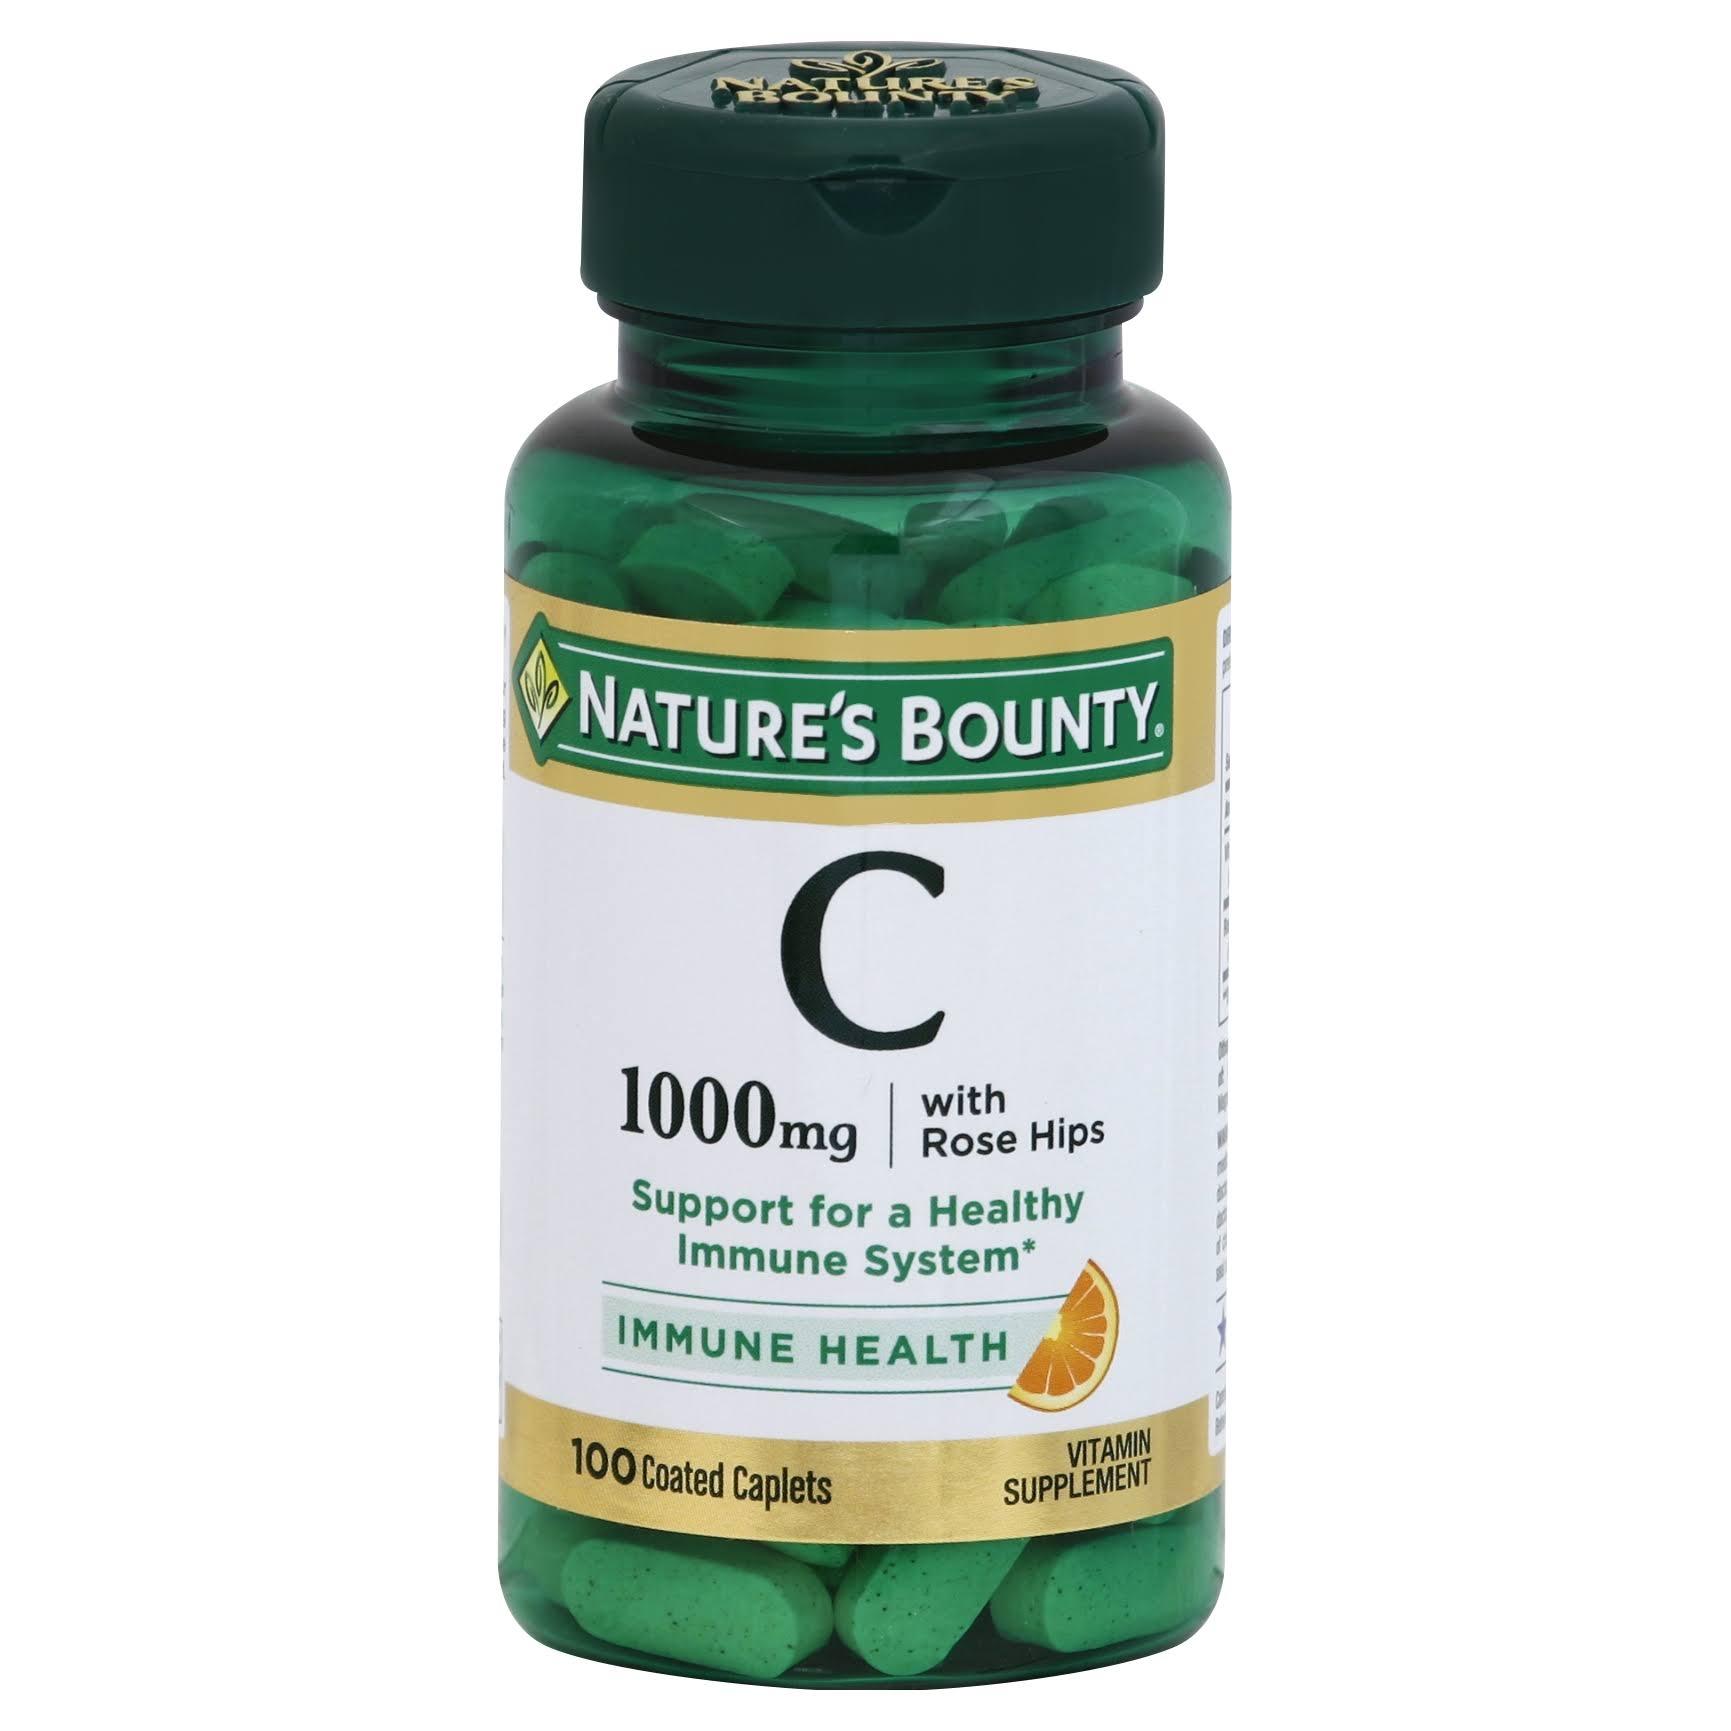 Nature's Bounty C Immune Health Coated Caplets 1000mg - 100 Pack